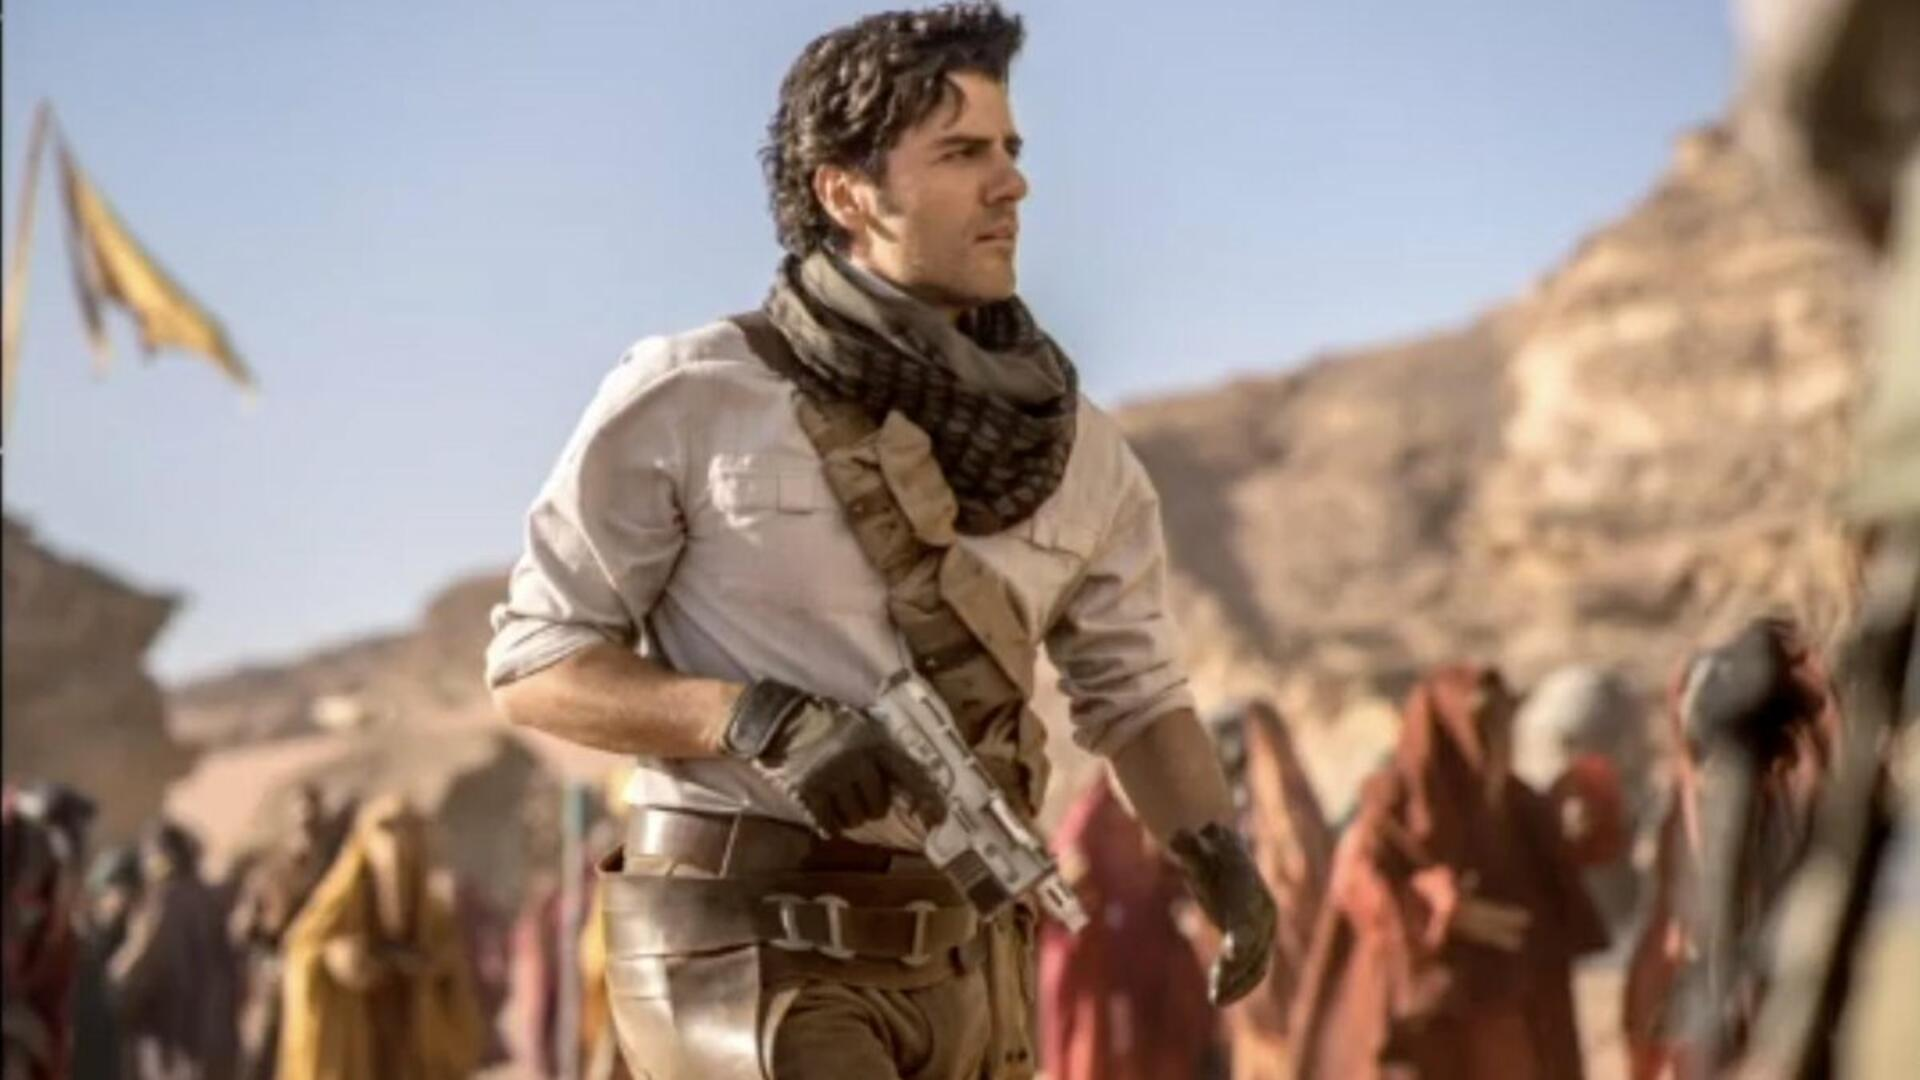 Poe Dameron In Star Wars Episode 9 Looks Just Like Nathan Drake